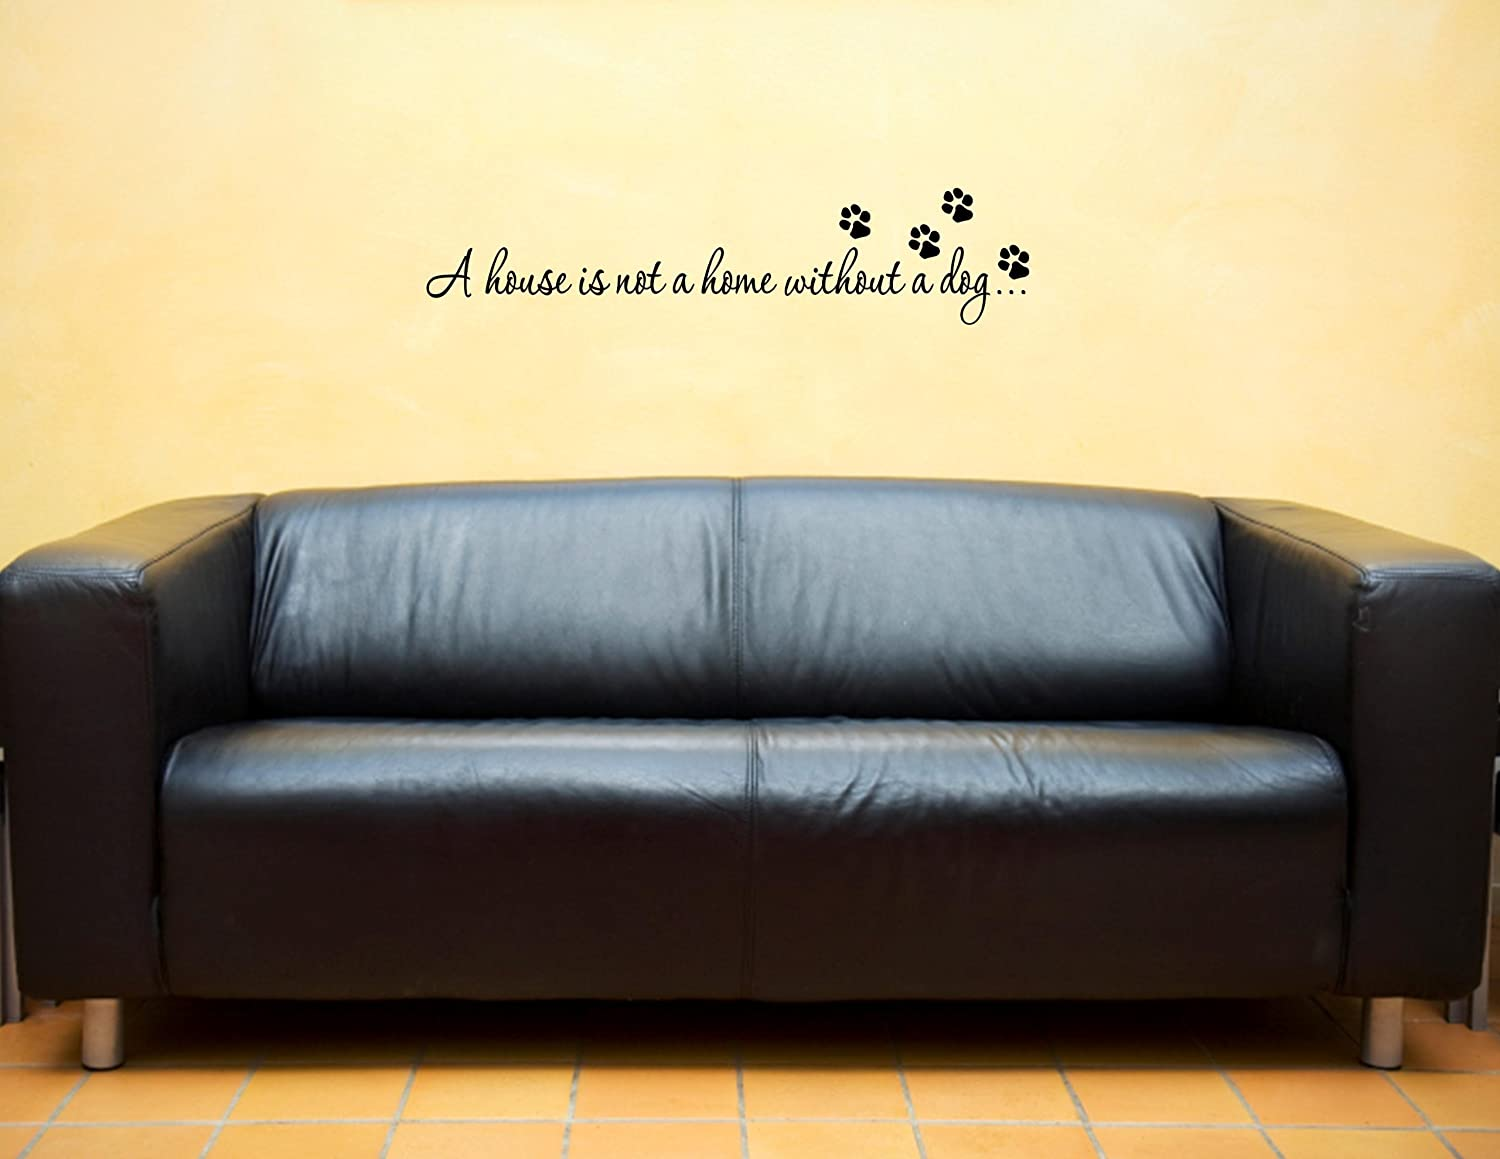 Amazon.com: A house is not a home without a dog... - Vinyl wall ...